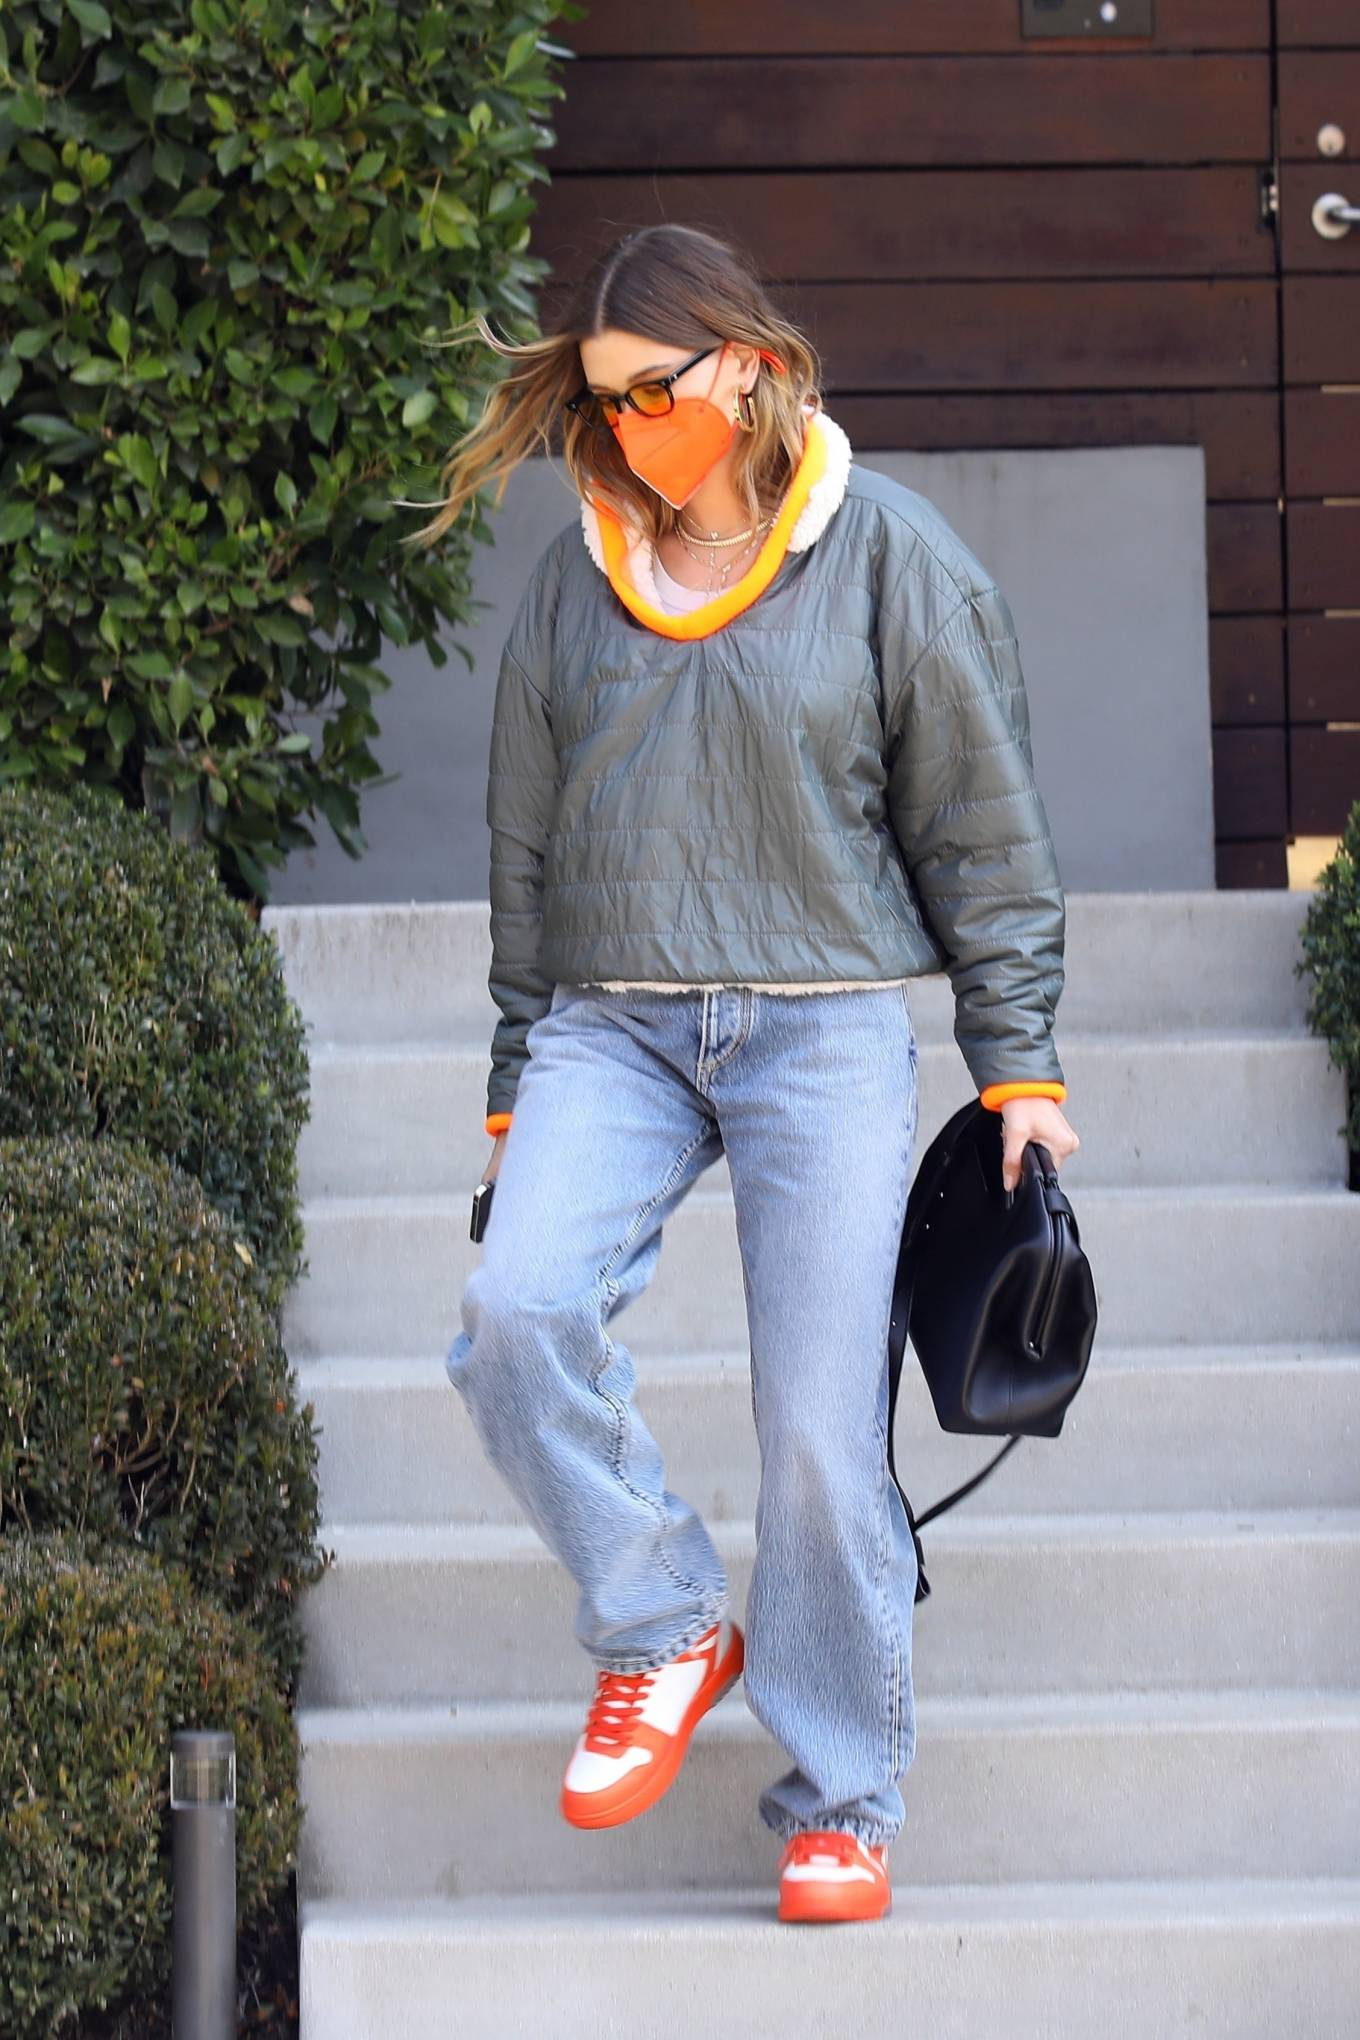 Hailey Baldwin, Nike sneakers, orange and white sneakers, black Bottega Veneta clutch, metallic grey pullover, round, lace-up, brand logo, yellow sunglasses, light blue jeans, color block. Hailey Baldwin wearing brand logo orange and white Nike lace-up sneakers